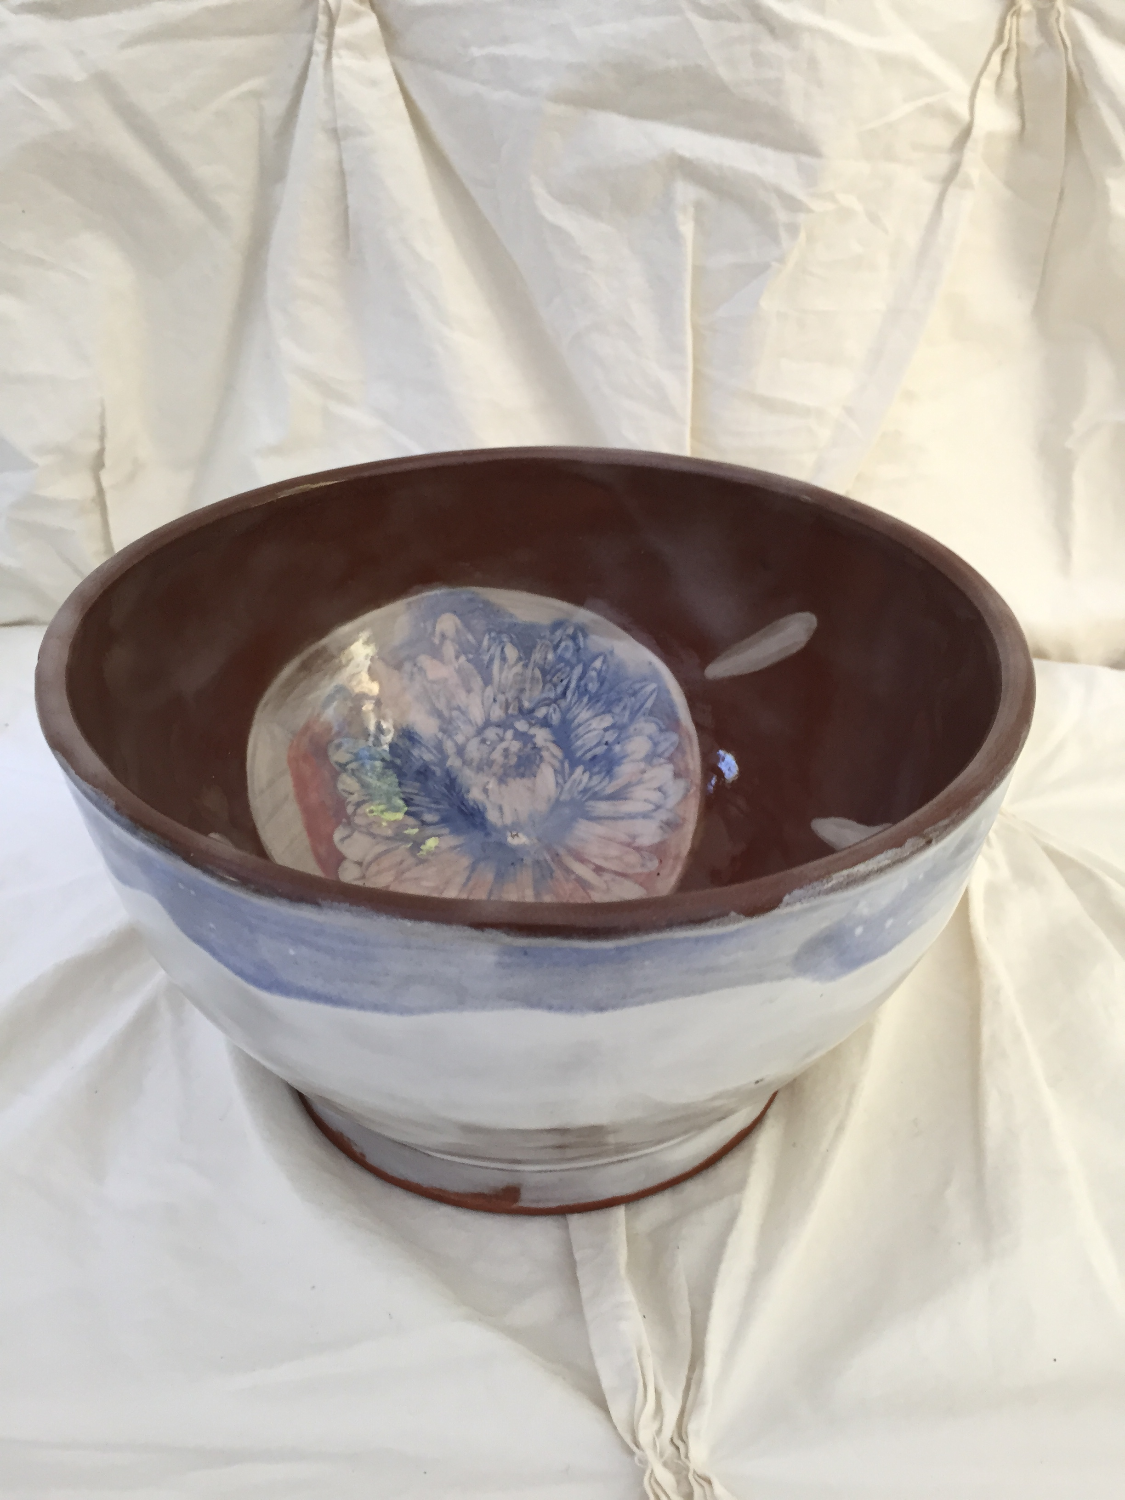 chrystanthemum on navajo clay bowl